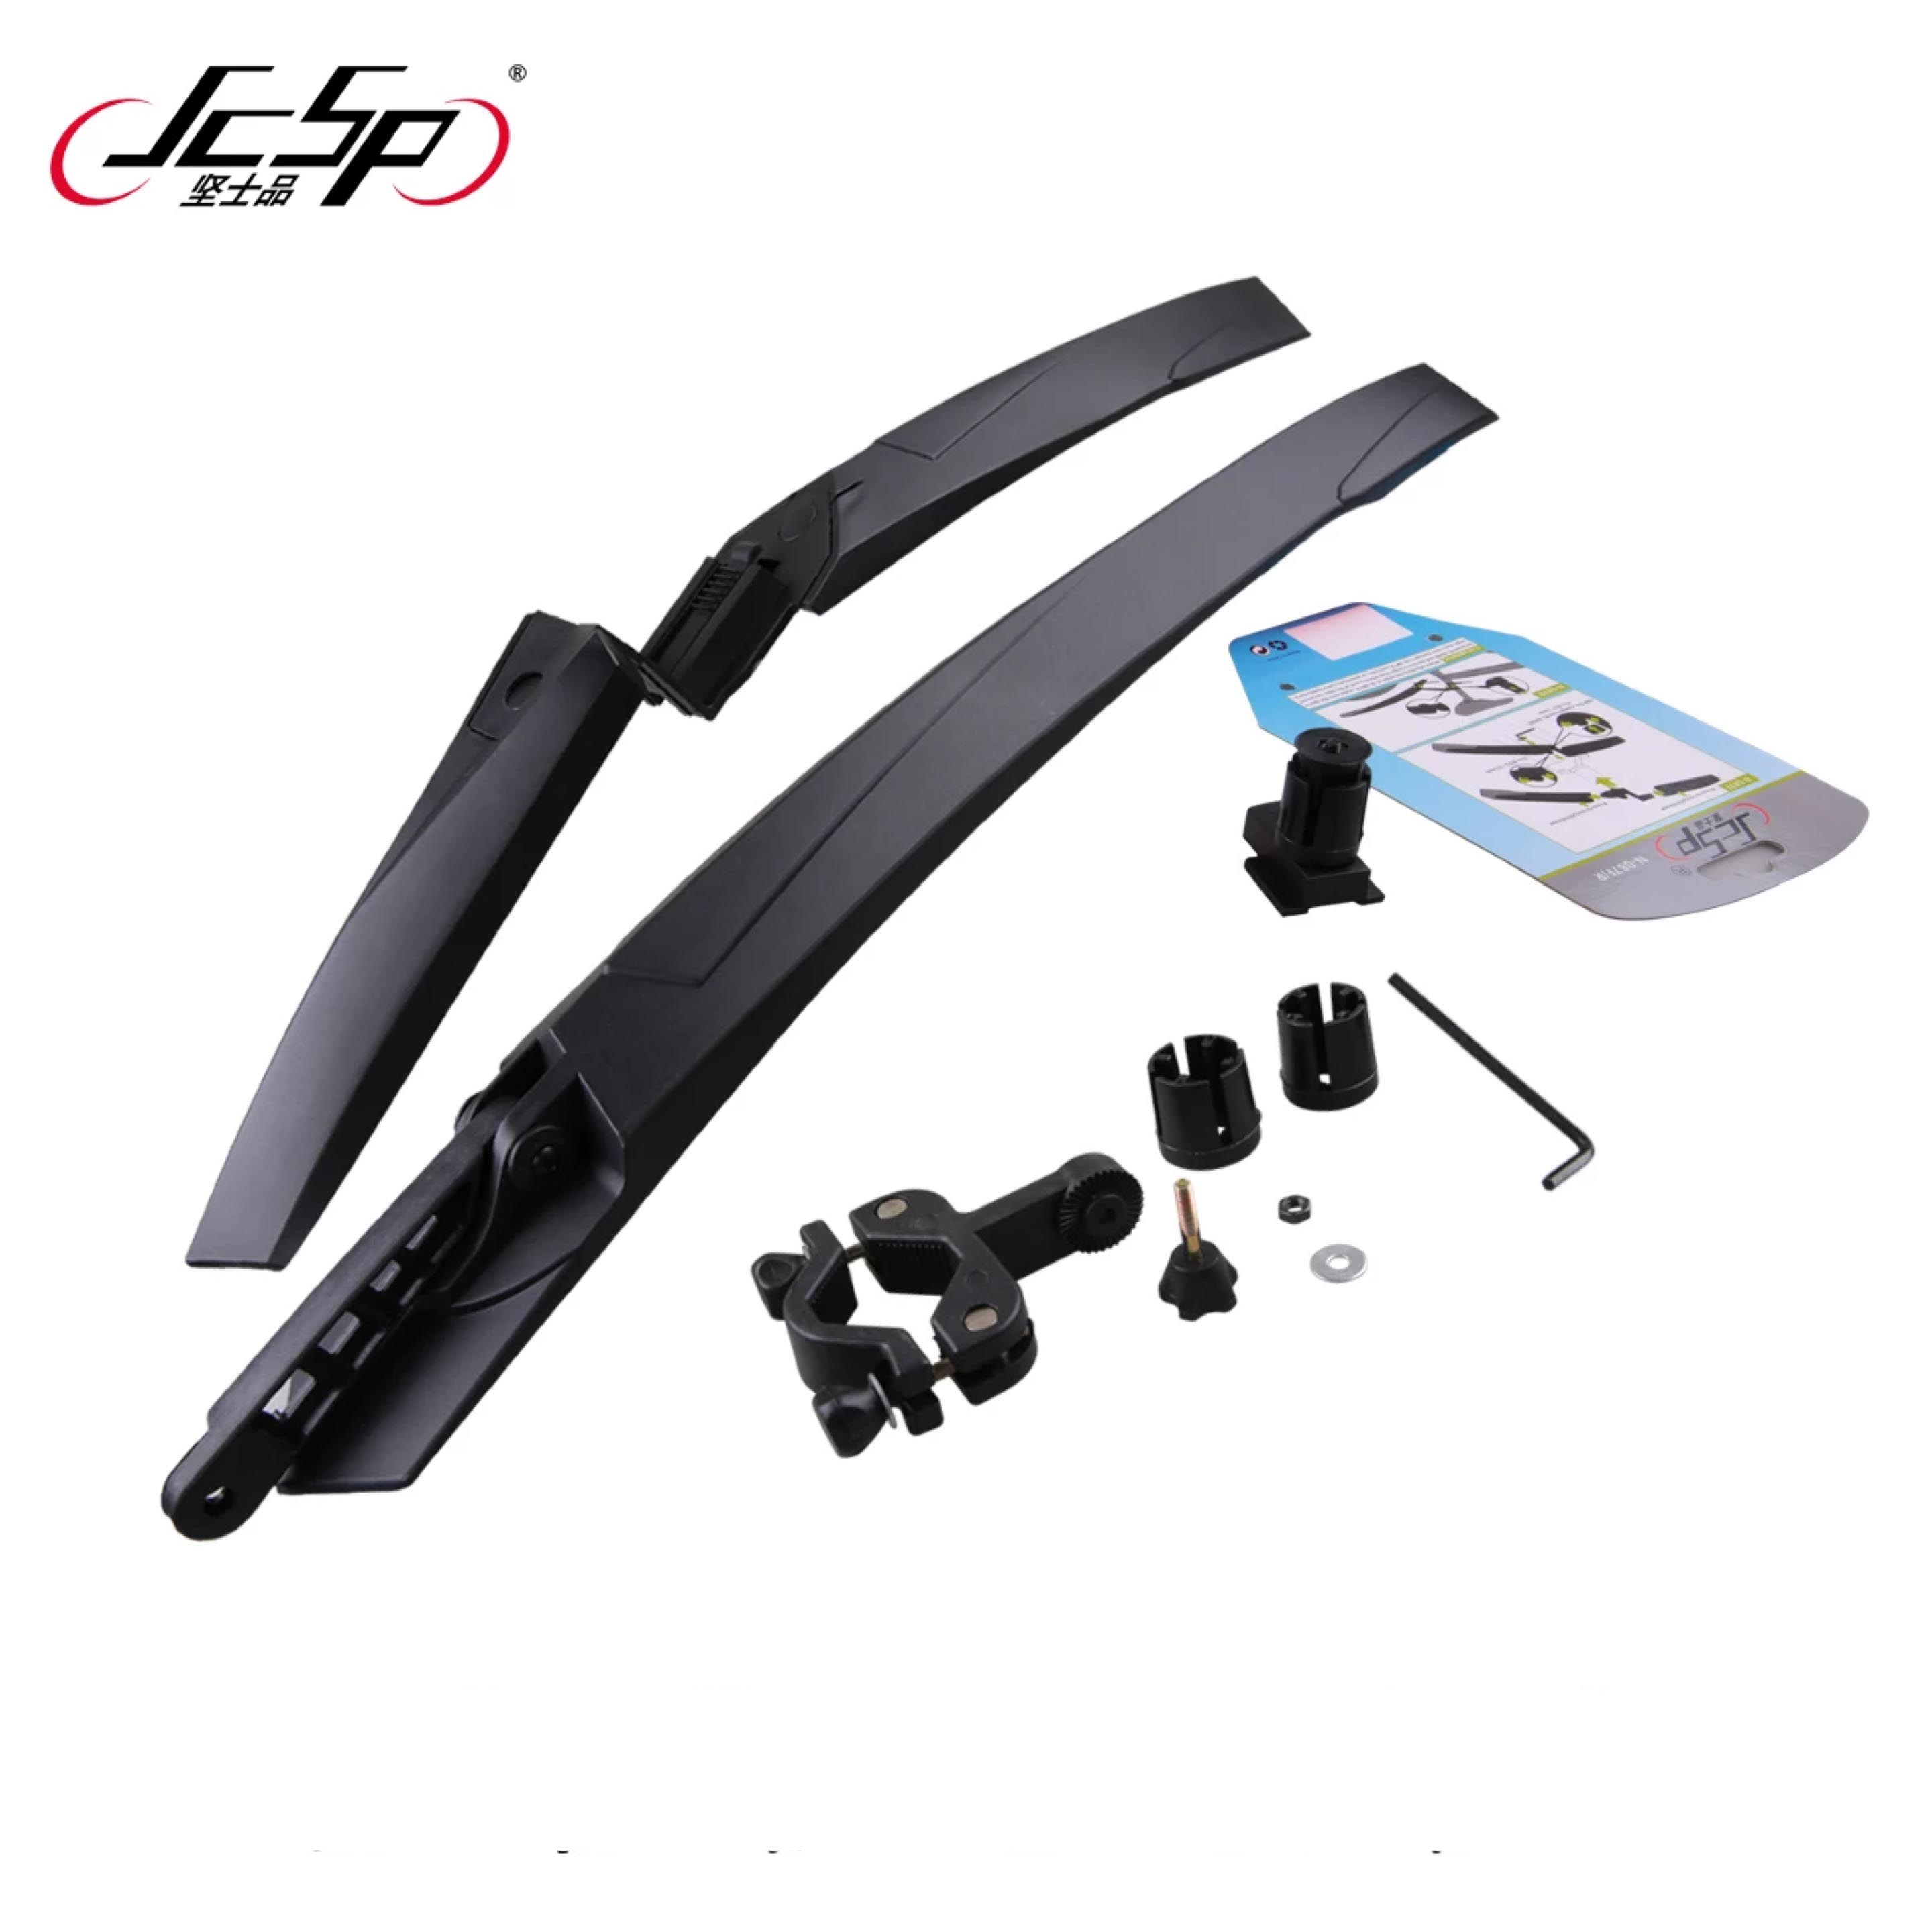 Bicycle fender mountainous bike quick disassembly mud tile 26 inch bicycle highway vehicle equipment general bicycle accessories